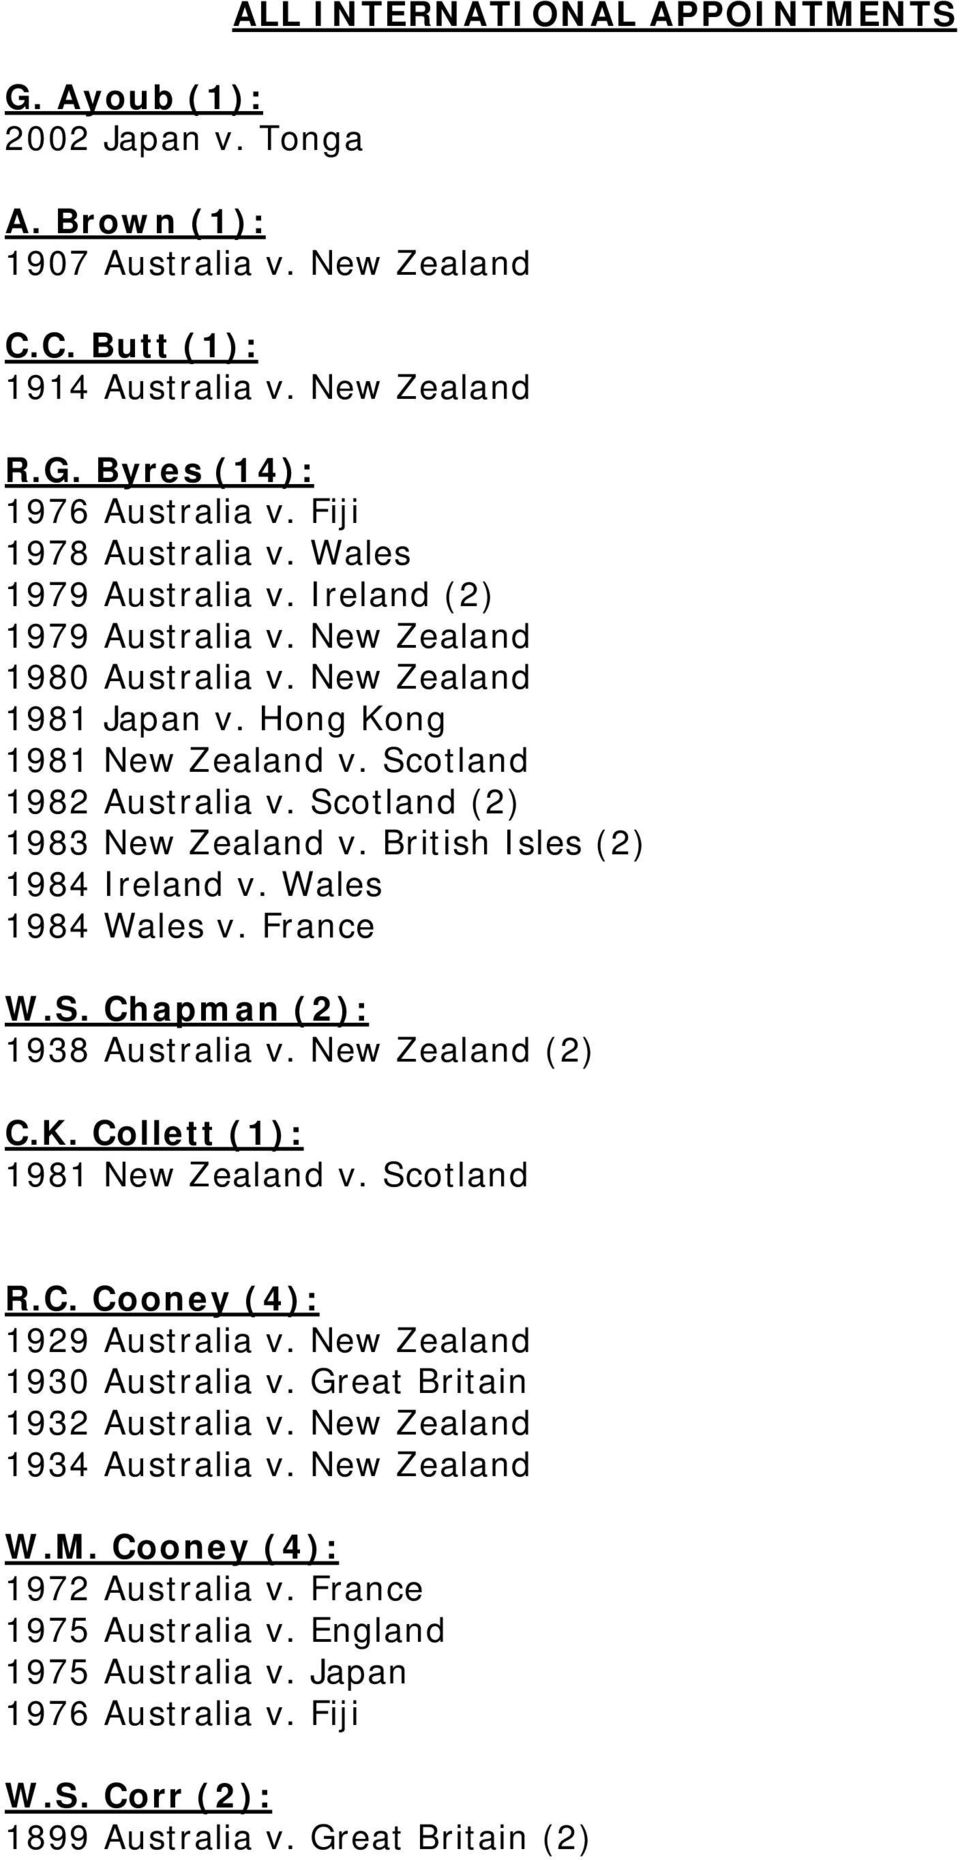 Scotland (2) 1983 New Zealand v. British Isles (2) 1984 Ireland v. Wales 1984 Wales v. France W.S. Chapman (2): 1938 Australia v. New Zealand (2) C.K. Collett (1): 1981 New Zealand v. Scotland R.C. Cooney (4): 1929 Australia v.